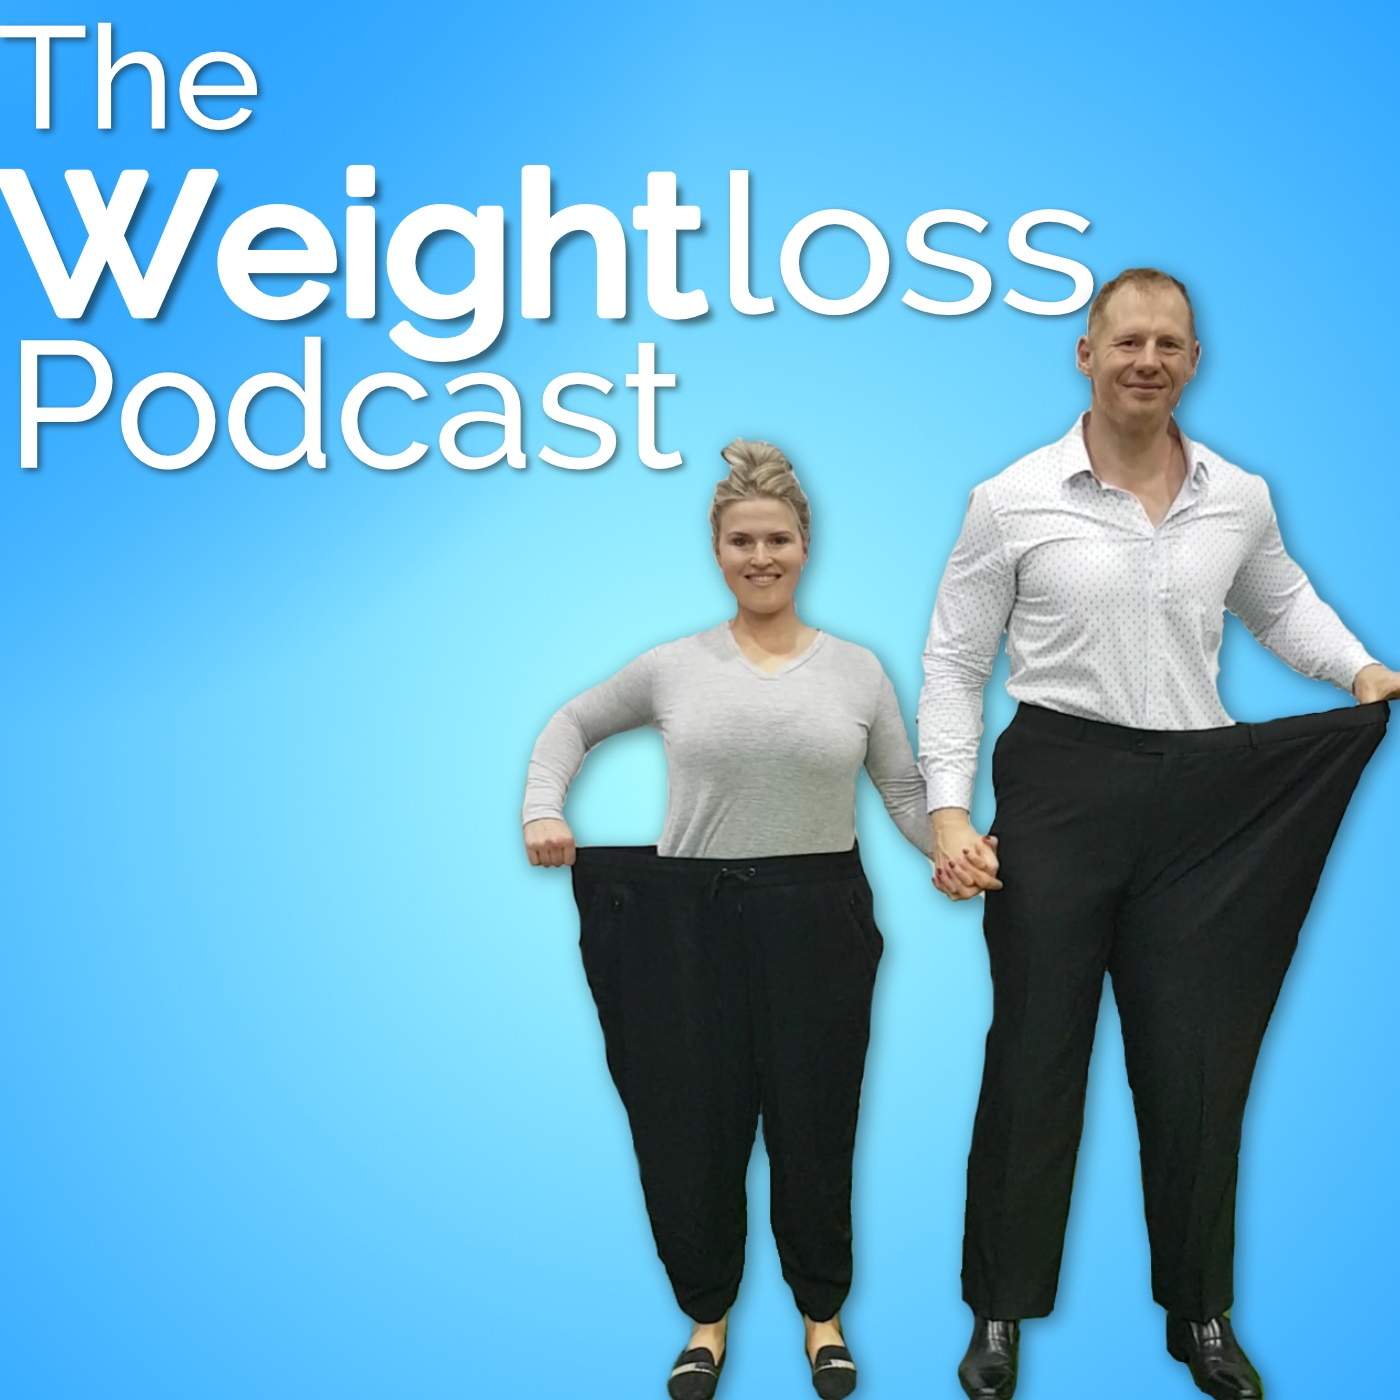 The Weight Loss Podcast show art